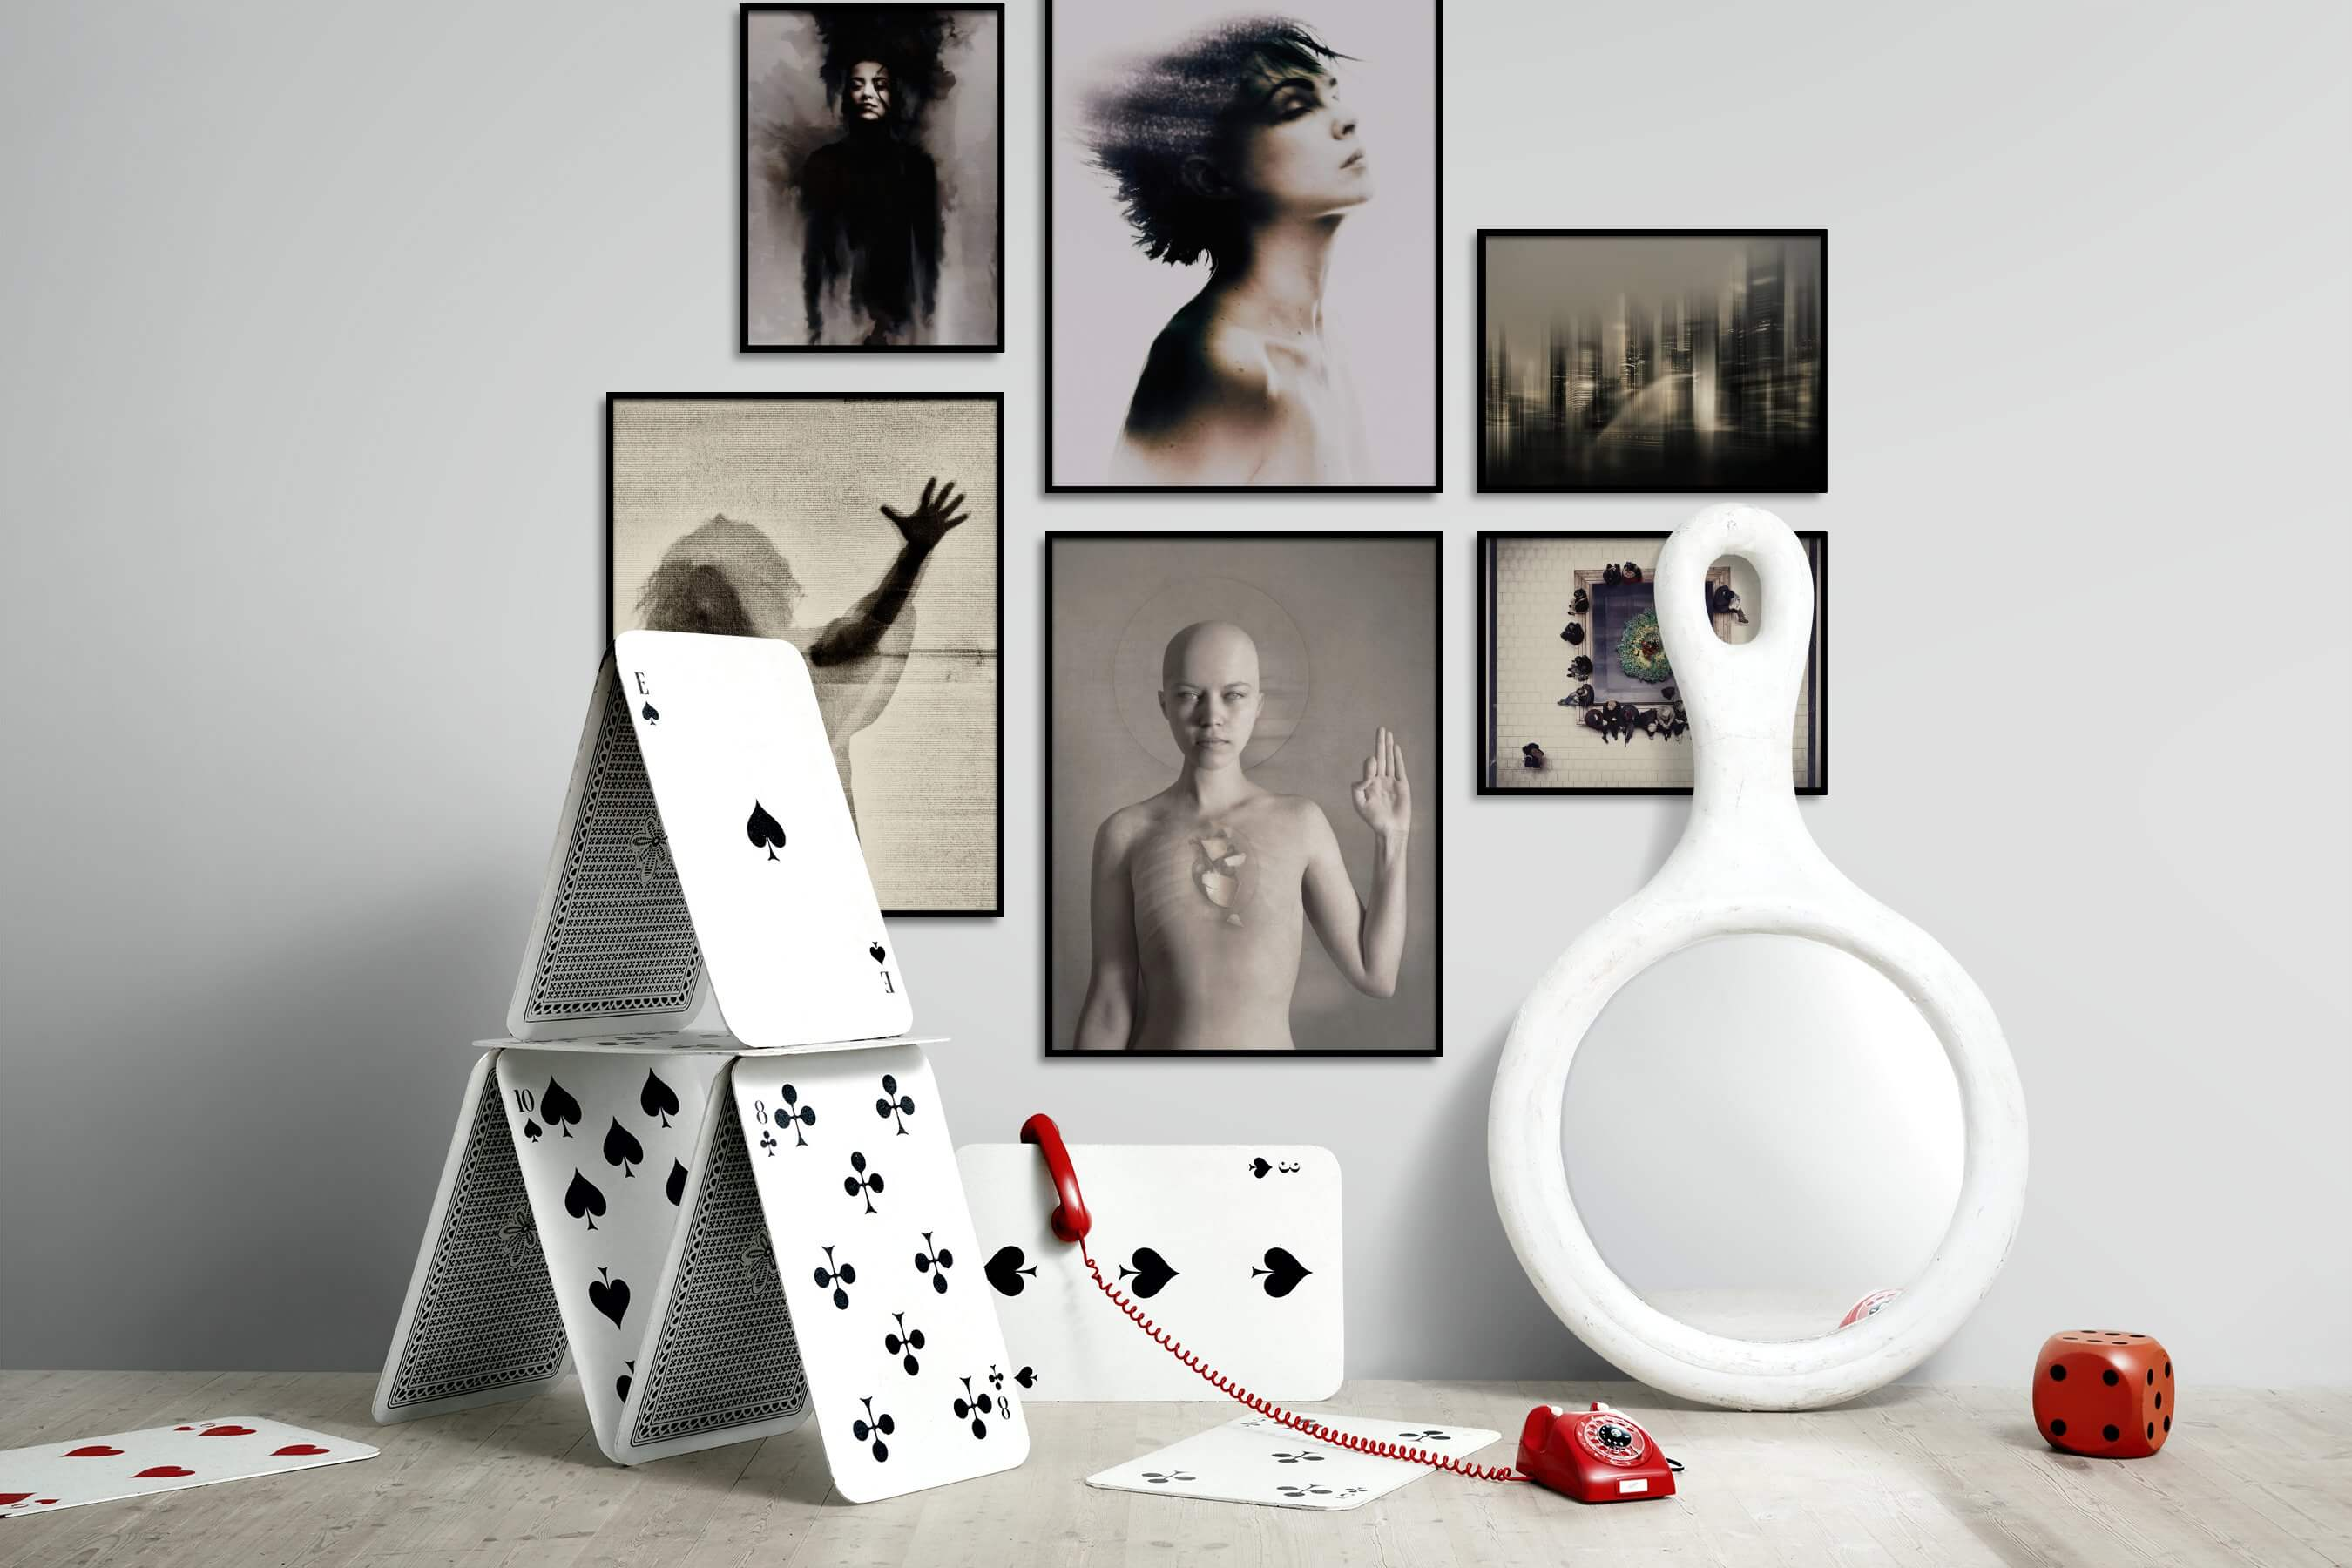 Gallery wall idea with six framed pictures arranged on a wall depicting Fashion & Beauty, Artsy, For the Maximalist, City Life, and For the Moderate